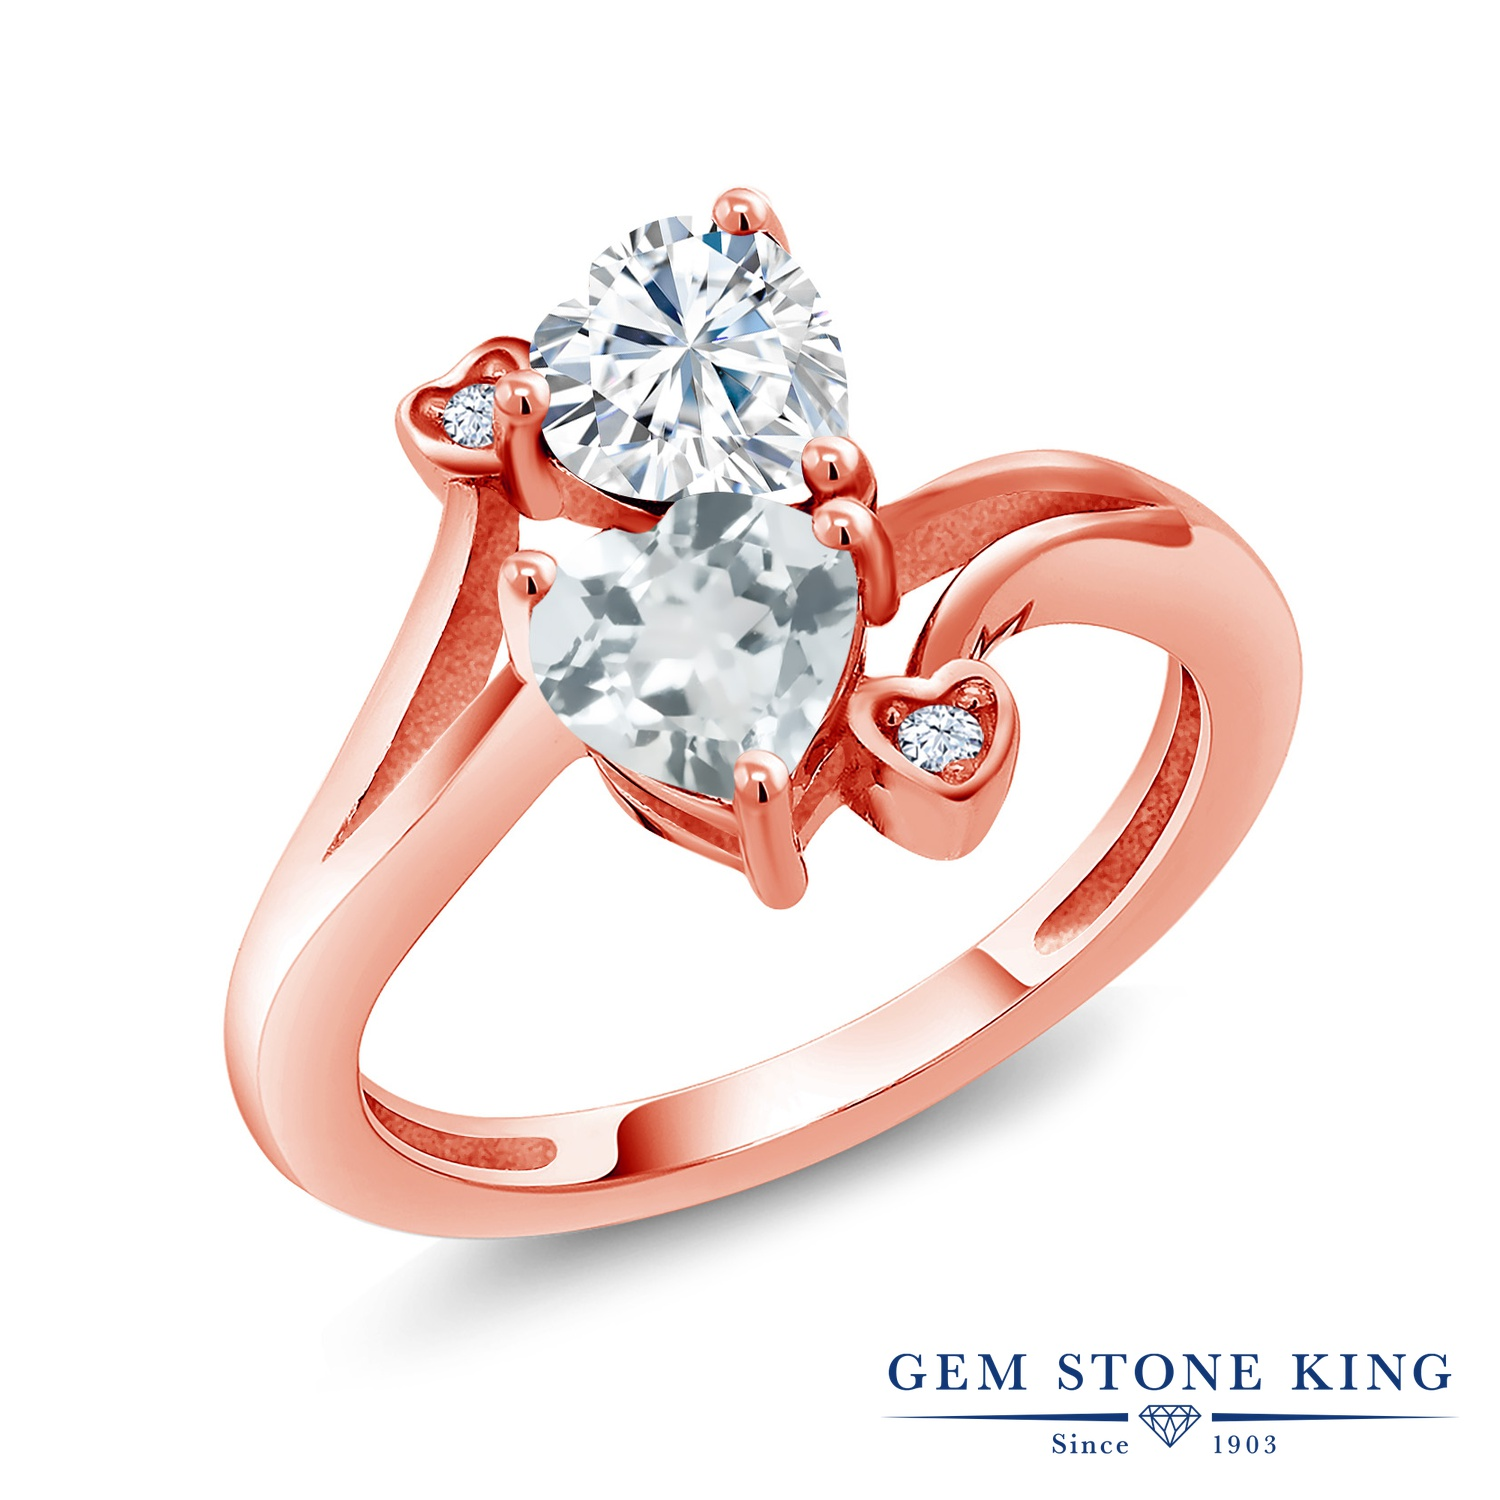 【10%OFF】 Gem Stone King 1.56カラット Forever Brilliant モアサナイト Charles & Colvard 天然 アクアマリン 指輪 リング レディース シルバー925 ピンクゴールド 加工 モアッサナイト クリスマスプレゼント 女性 彼女 妻 誕生日